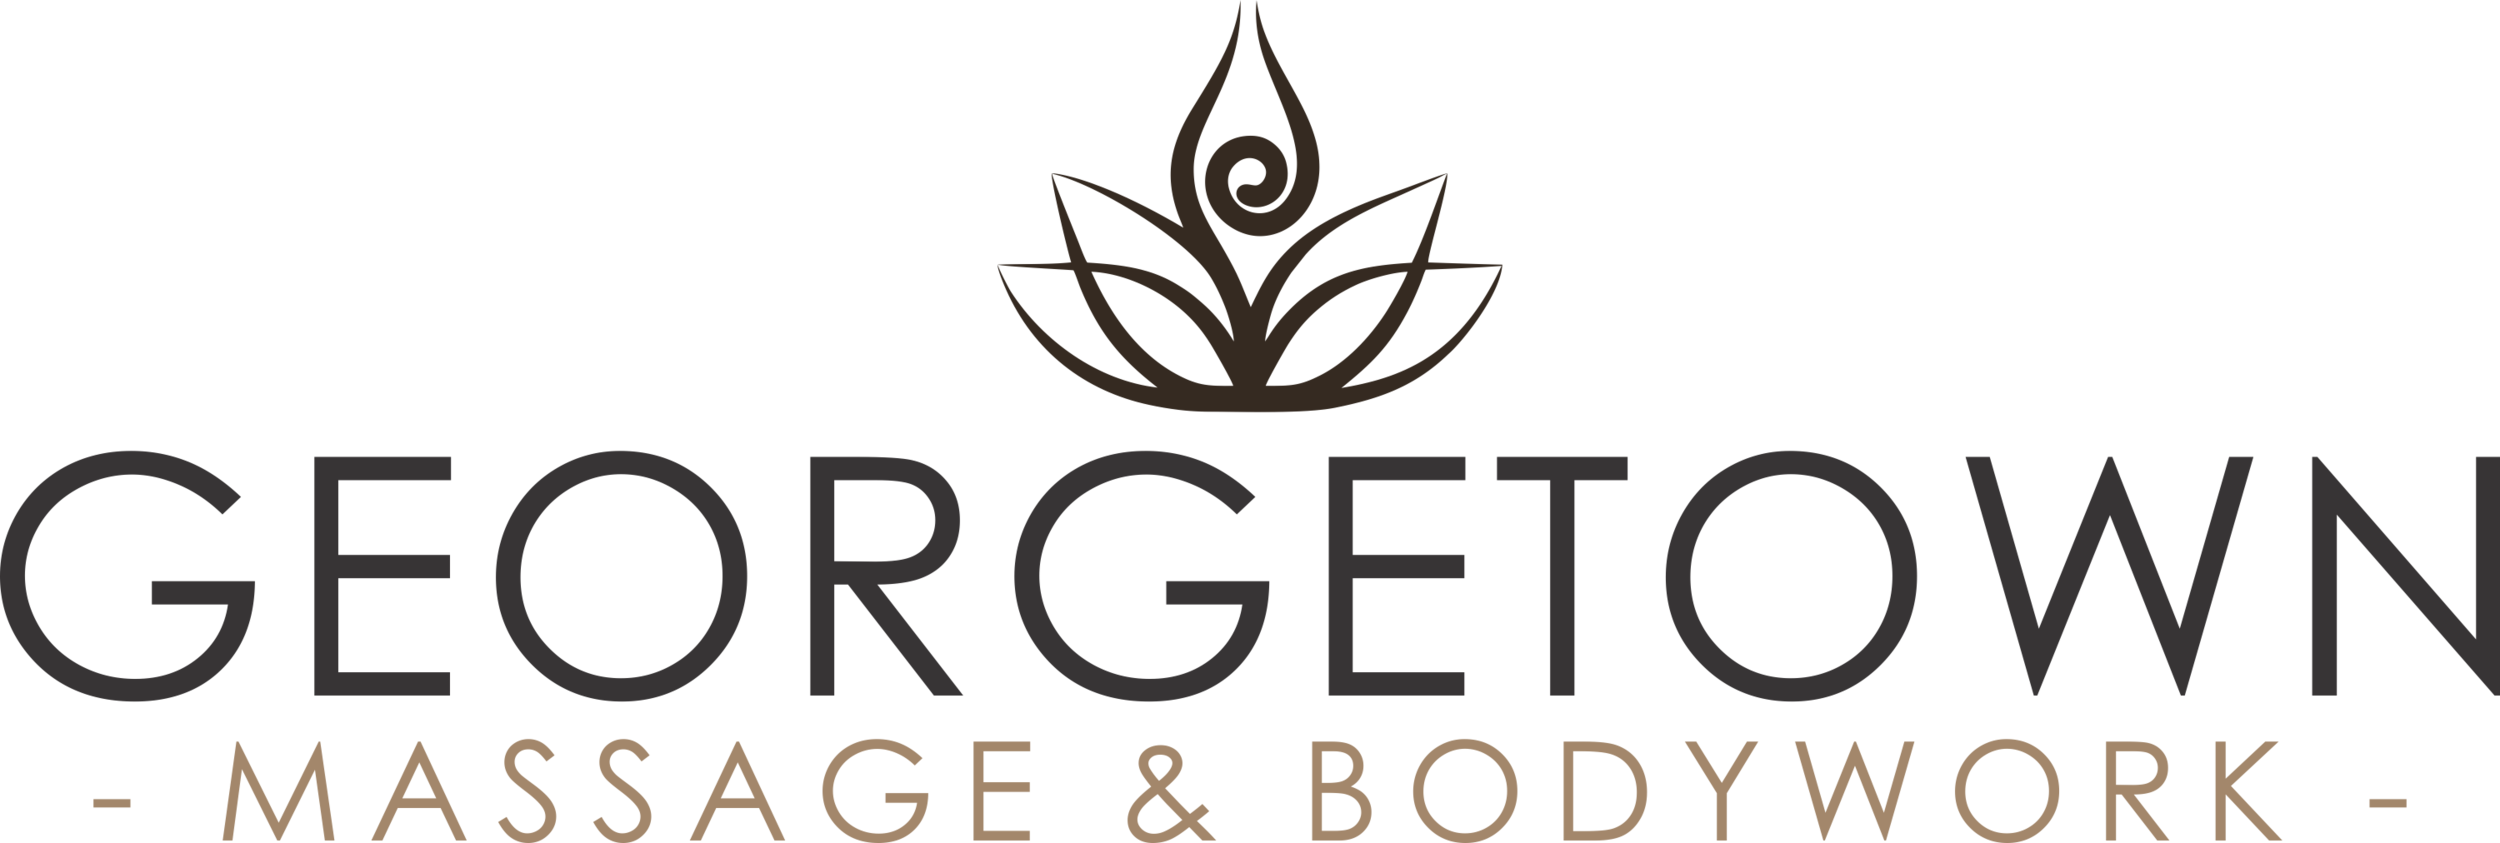 GeorgetownMassageBodyworkVerticalLogo.png